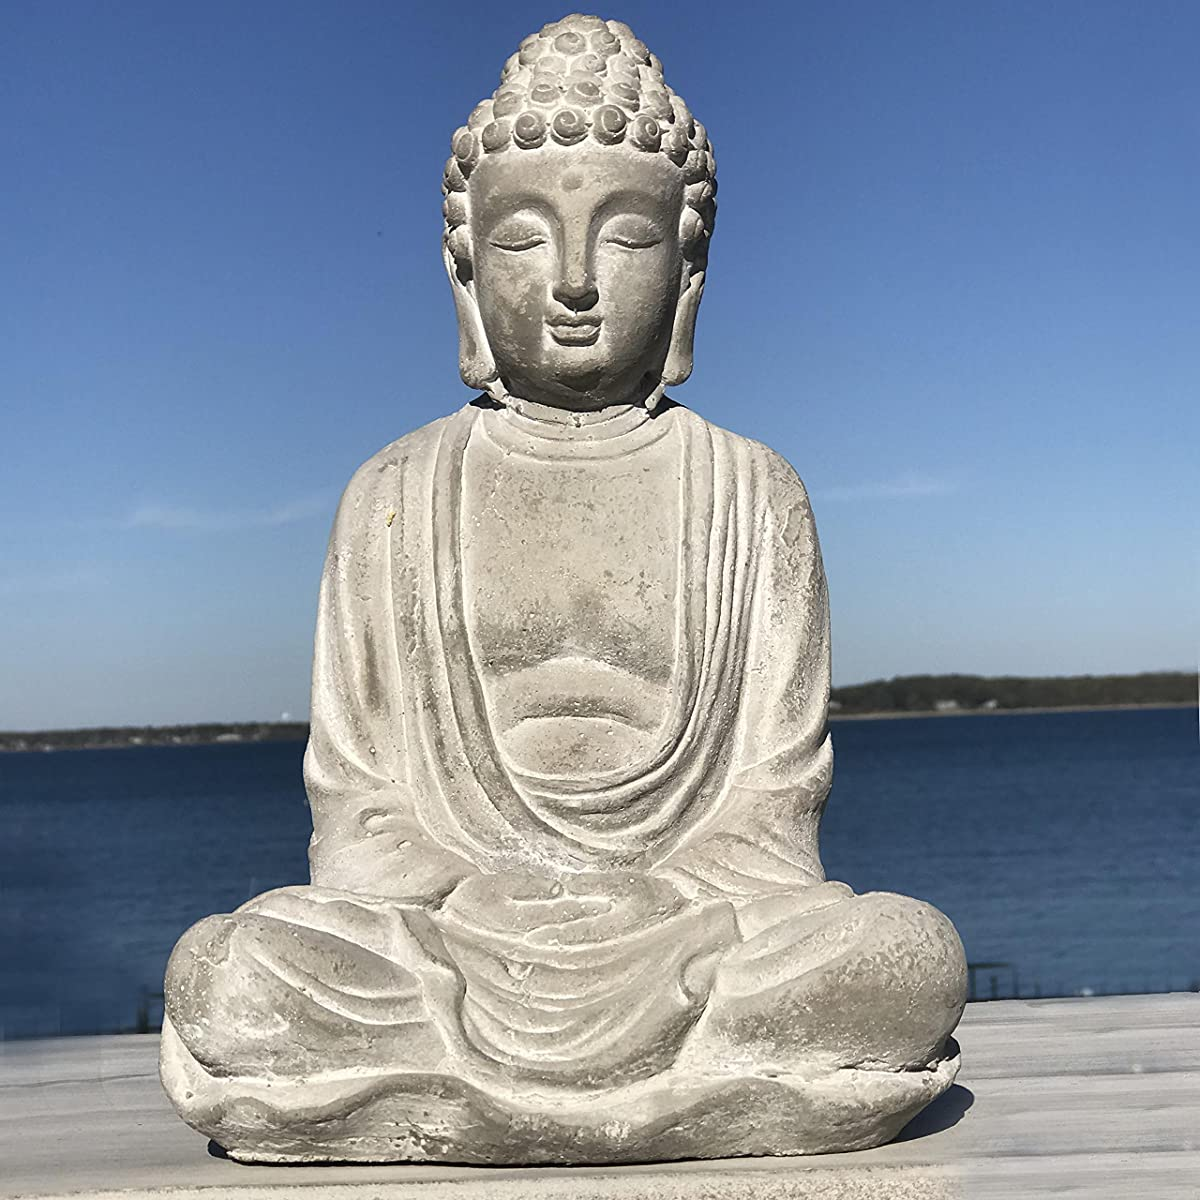 Whole House Worlds The Urban Zen Buddha Statue, Seated in Dhyanasana, Antiqued Stone Finish, Traces Of White Washed Paint, Hand Cast Cement, 11 In T, Garden and Home, From the Serenity Collection, By